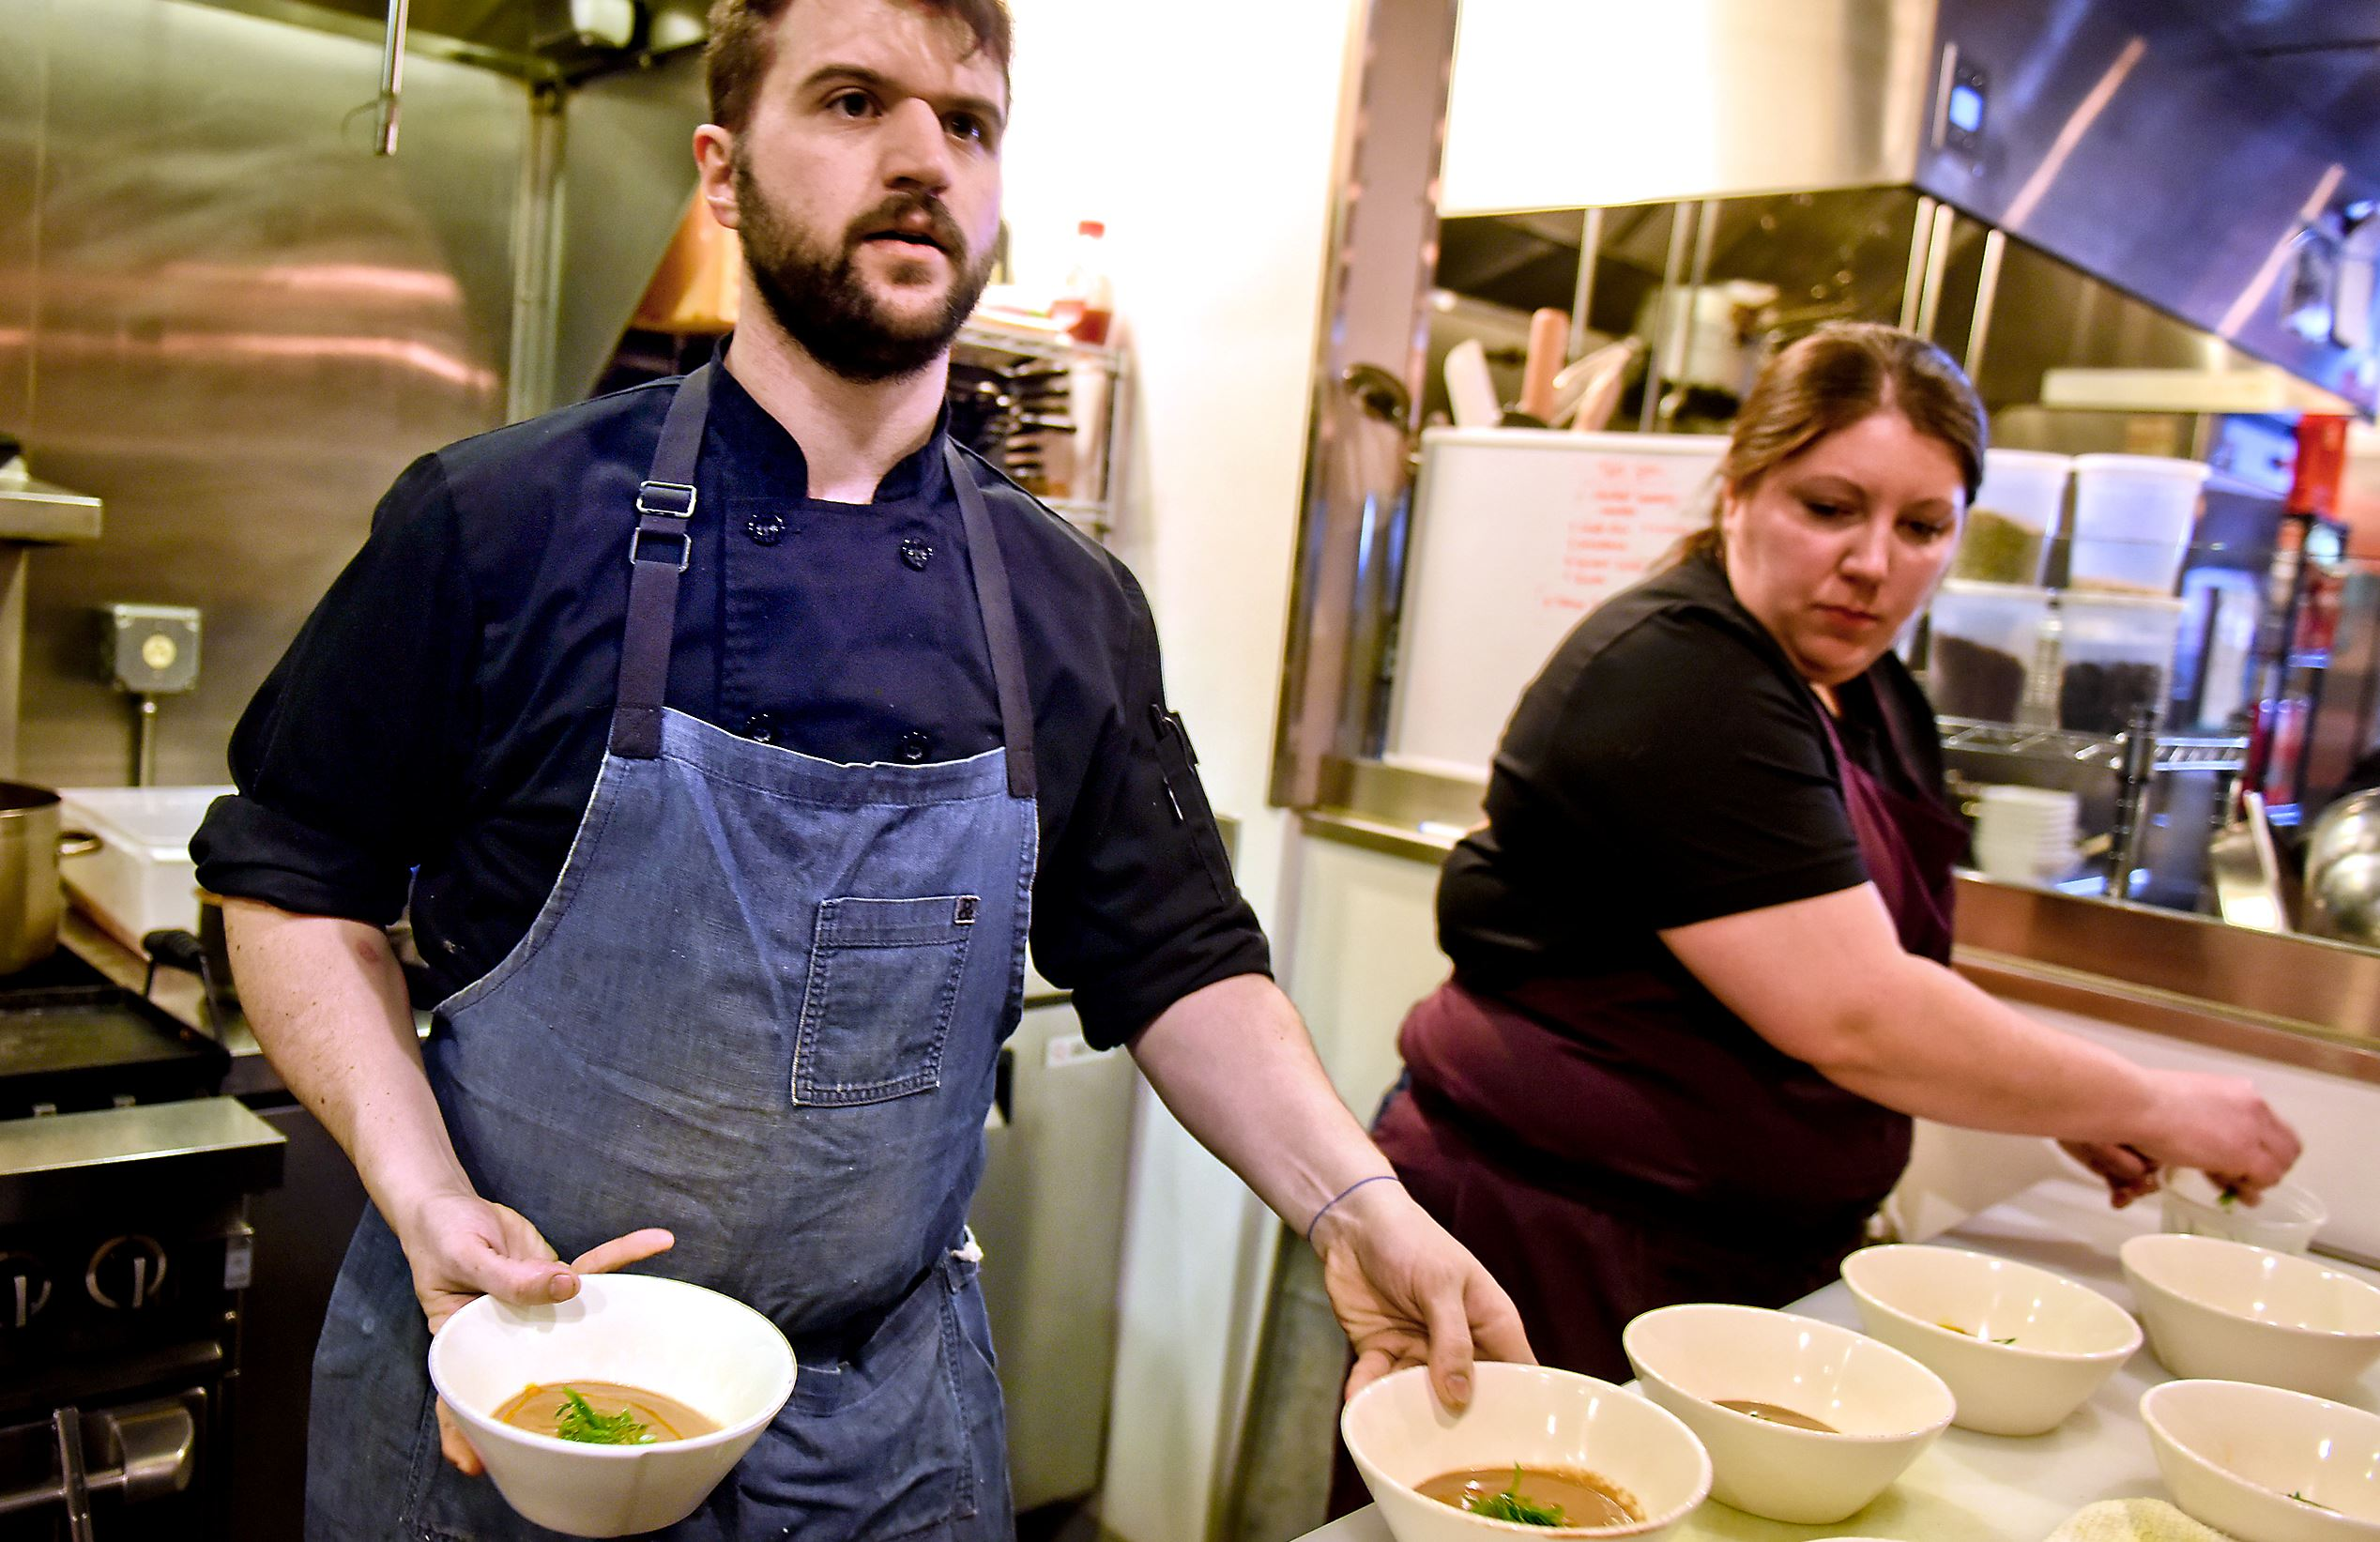 """20170213smCookOff005-3 Steve Mellon/Post-Gazette. Magazine Chef Jesse Barlass, with help from Marisa Cantelli, makes final preparations during a """"cook off"""" at Smallman Galley in the Strip District in March. Barlass was one of eight candidates auditioning for one of four openings at the restaurant incubator."""